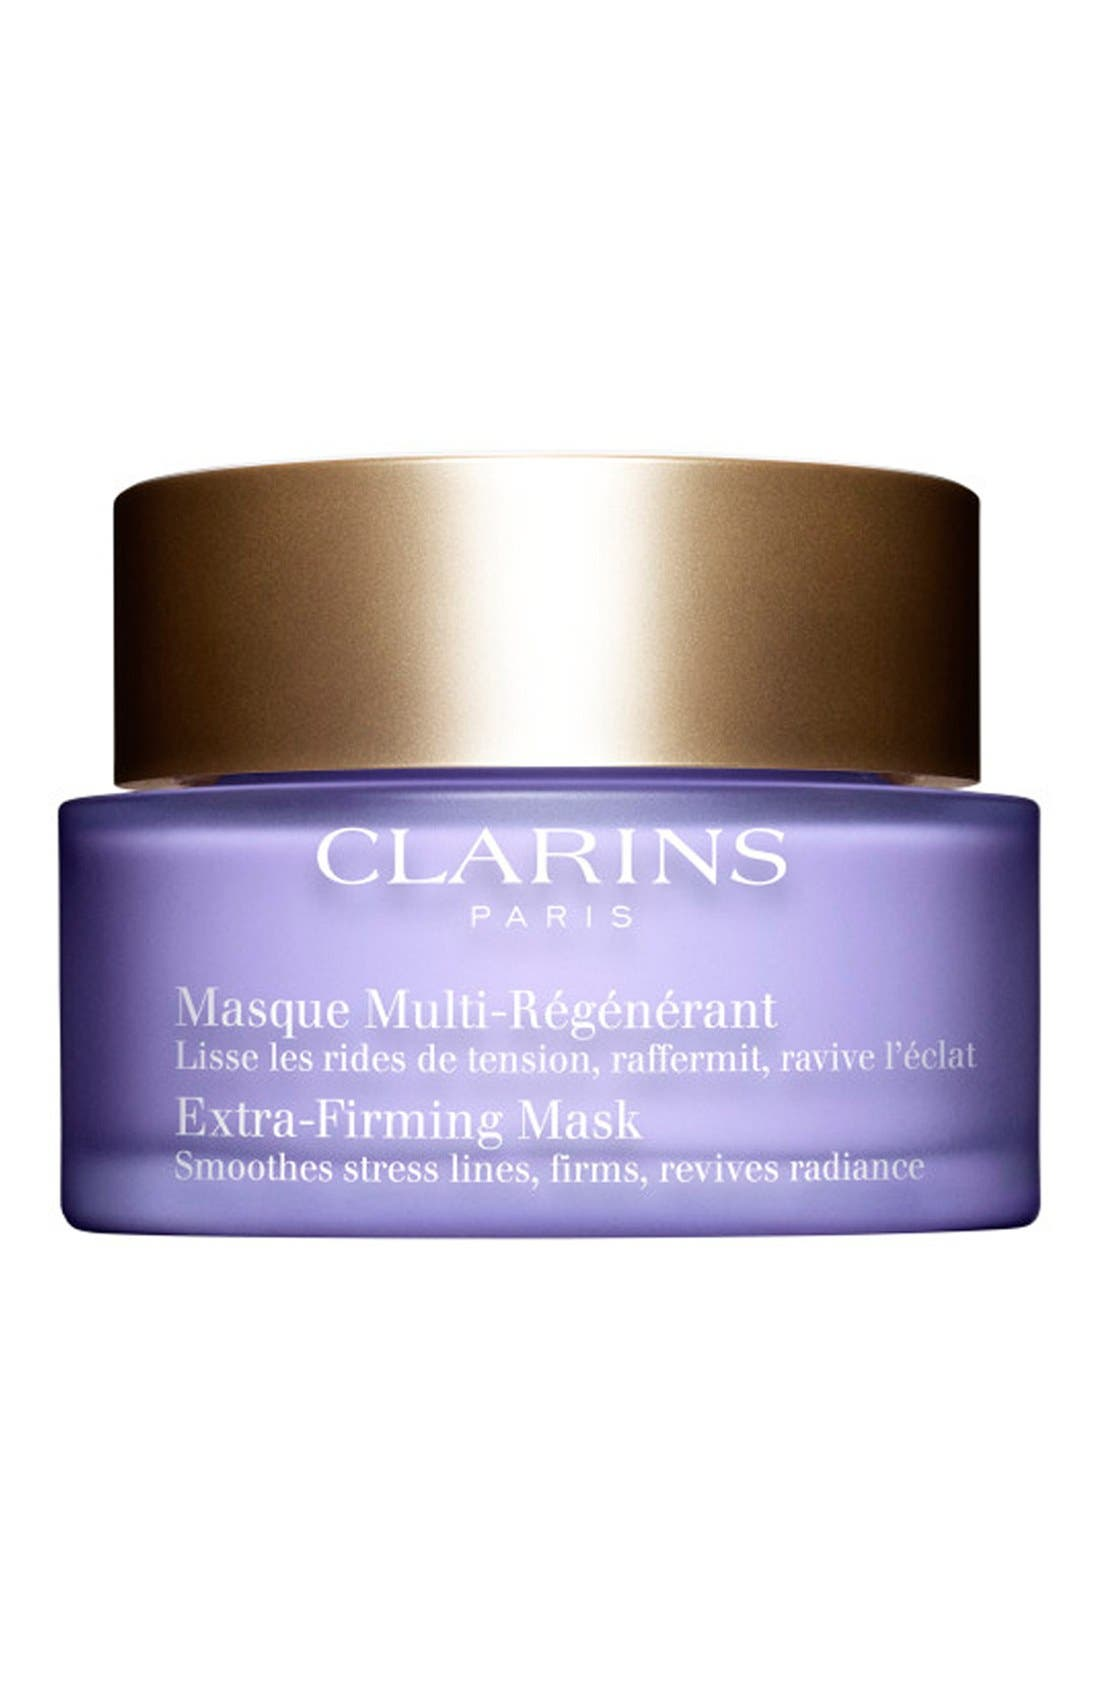 Extra-Firming Mask,                             Main thumbnail 1, color,                             NO COLOR